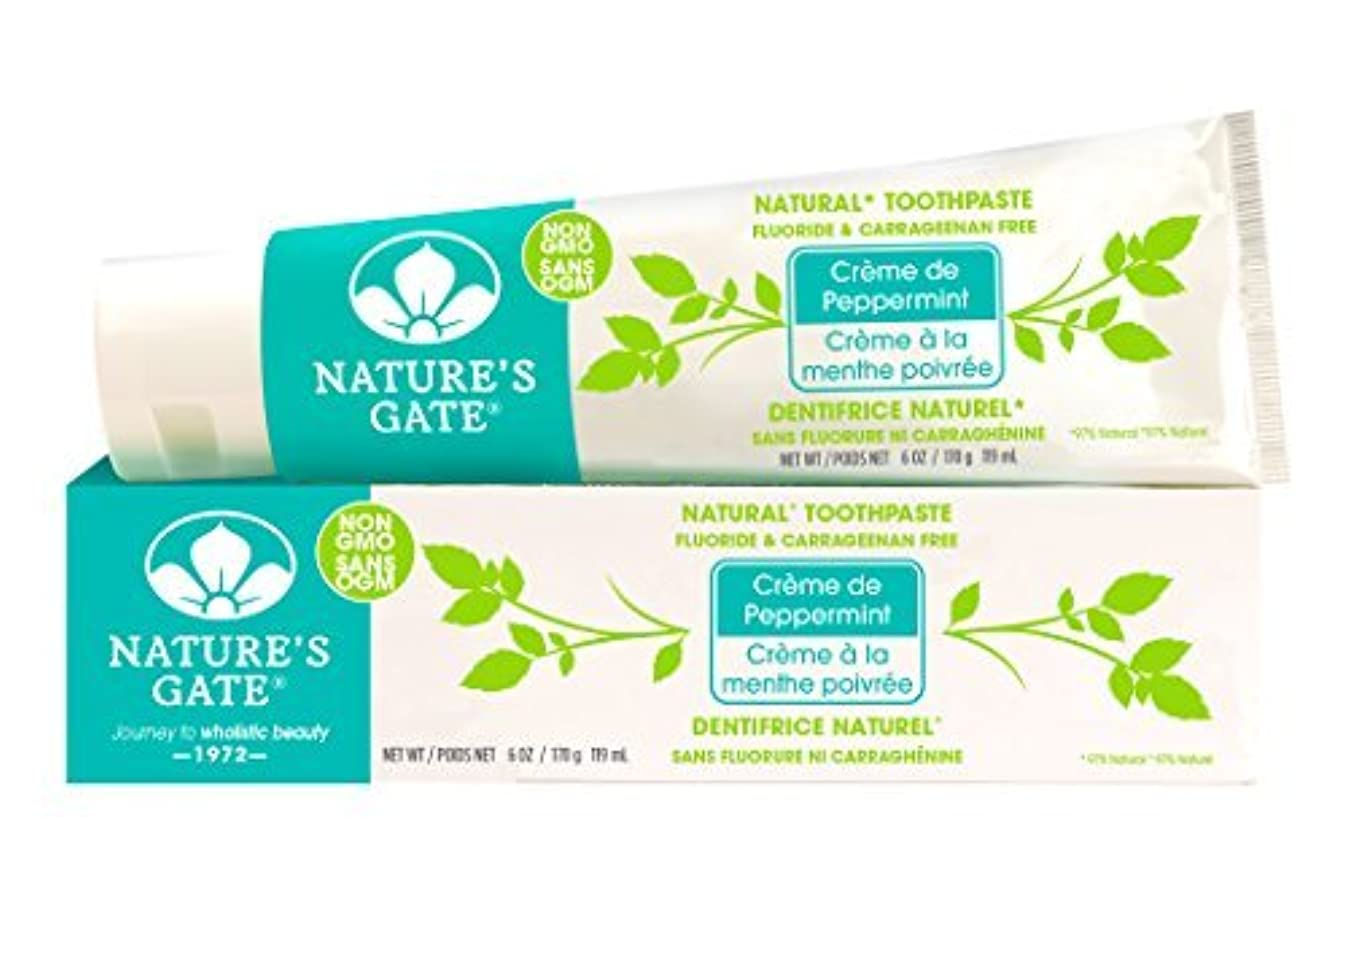 自然公園遊具あからさまNature's Gate Natural Toothpaste, Creme de Peppermint, 6-Ounce Tubes (Pack of 6) by Nature's Gate [並行輸入品]